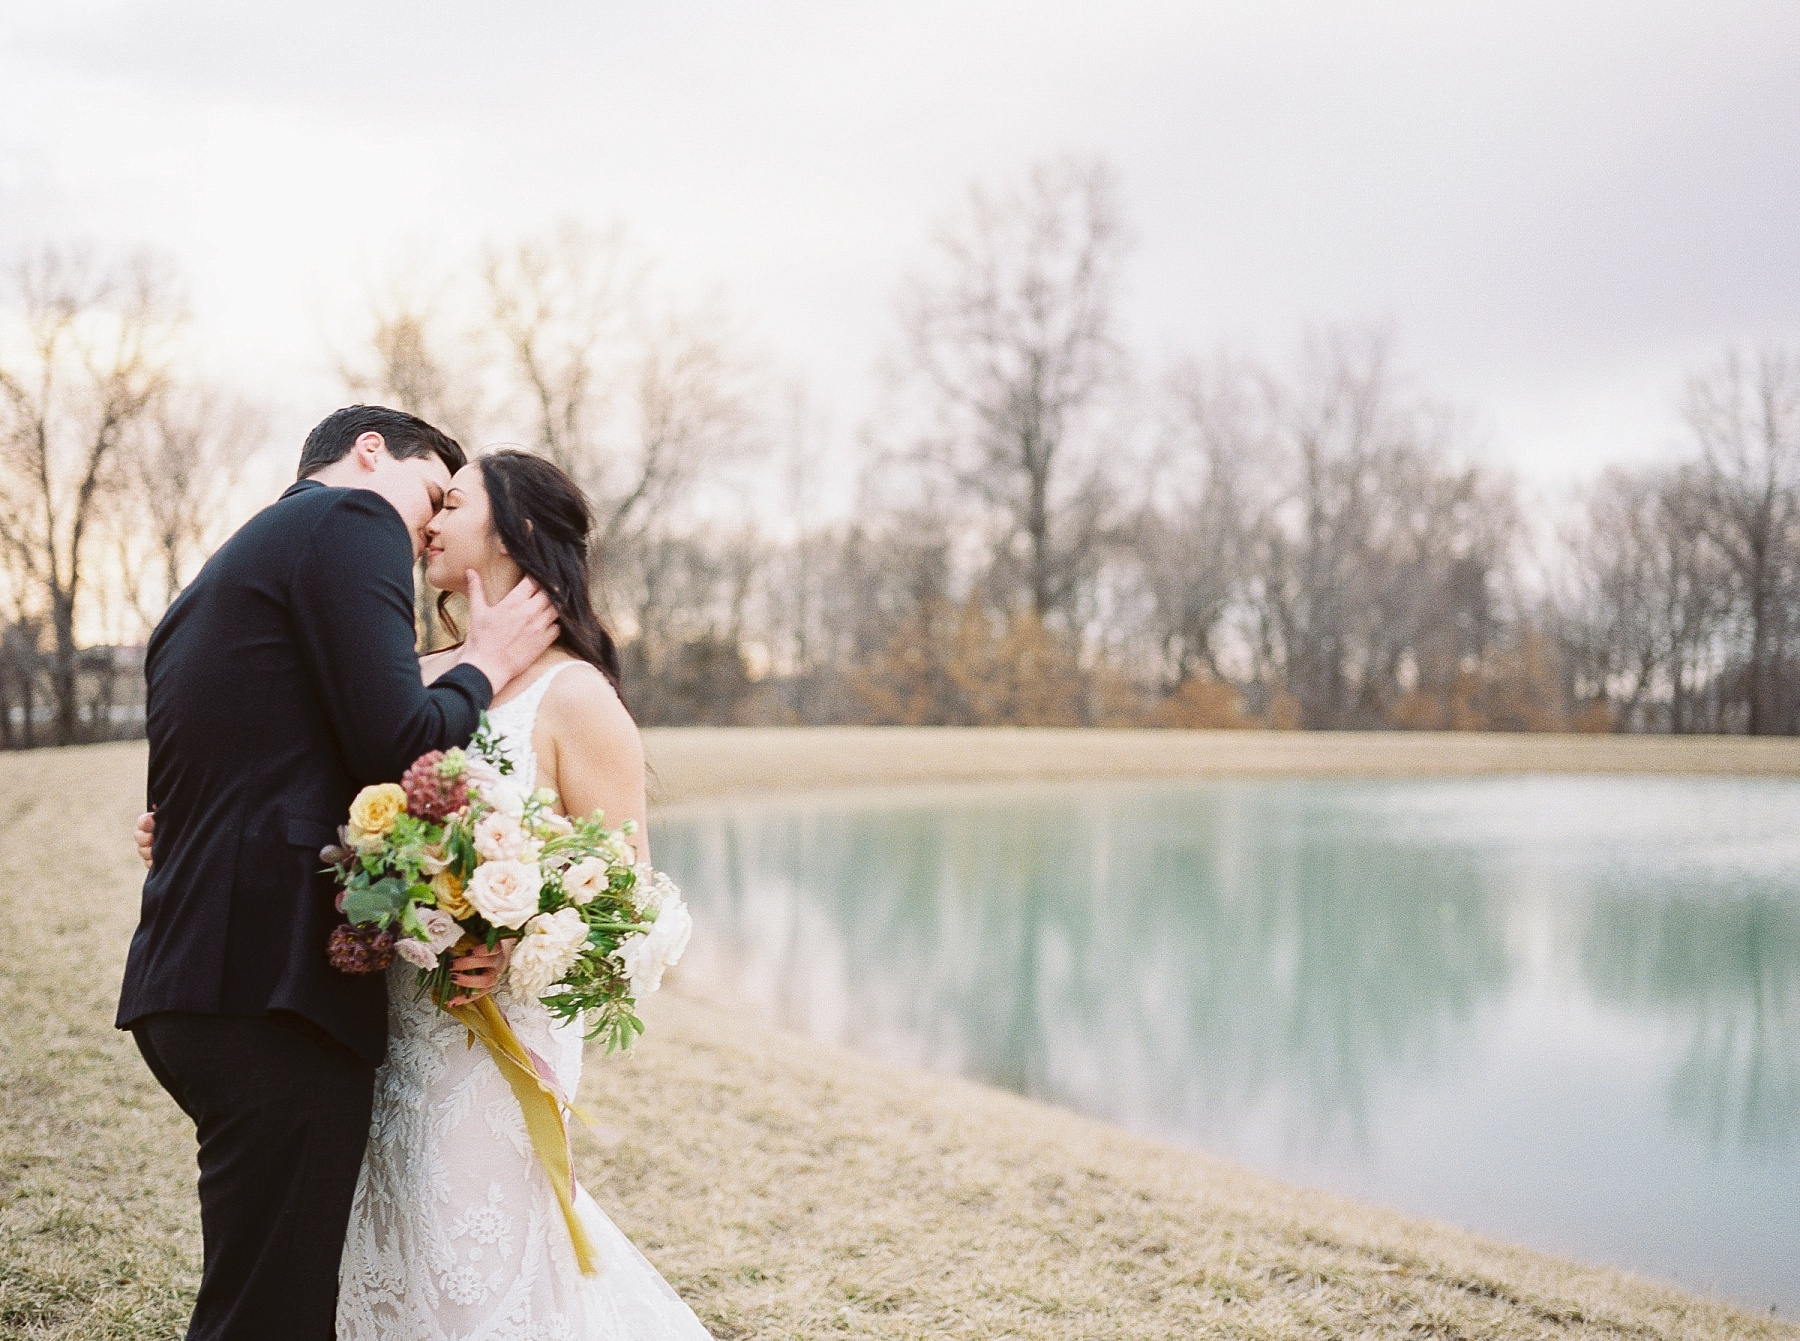 Intimate Lakeside Elopement at Emerson Fields All White Wedding Venue by Kelsi Kliethermes Photography Best Missouri and Maui Wedding Photographer_0026.jpg